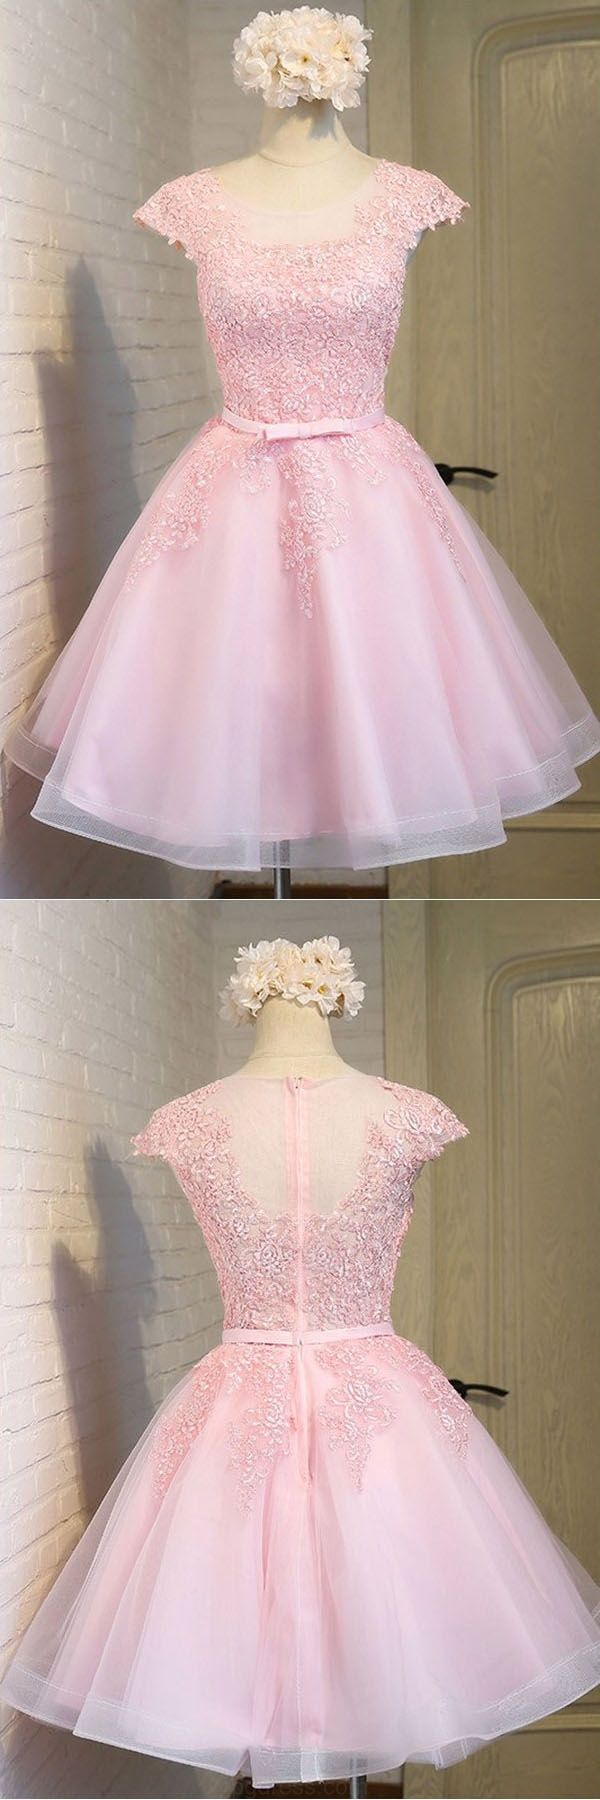 Hot Sale Beautiful Prom Dress Wedding Dresses Pink Lace Short Tulle ...